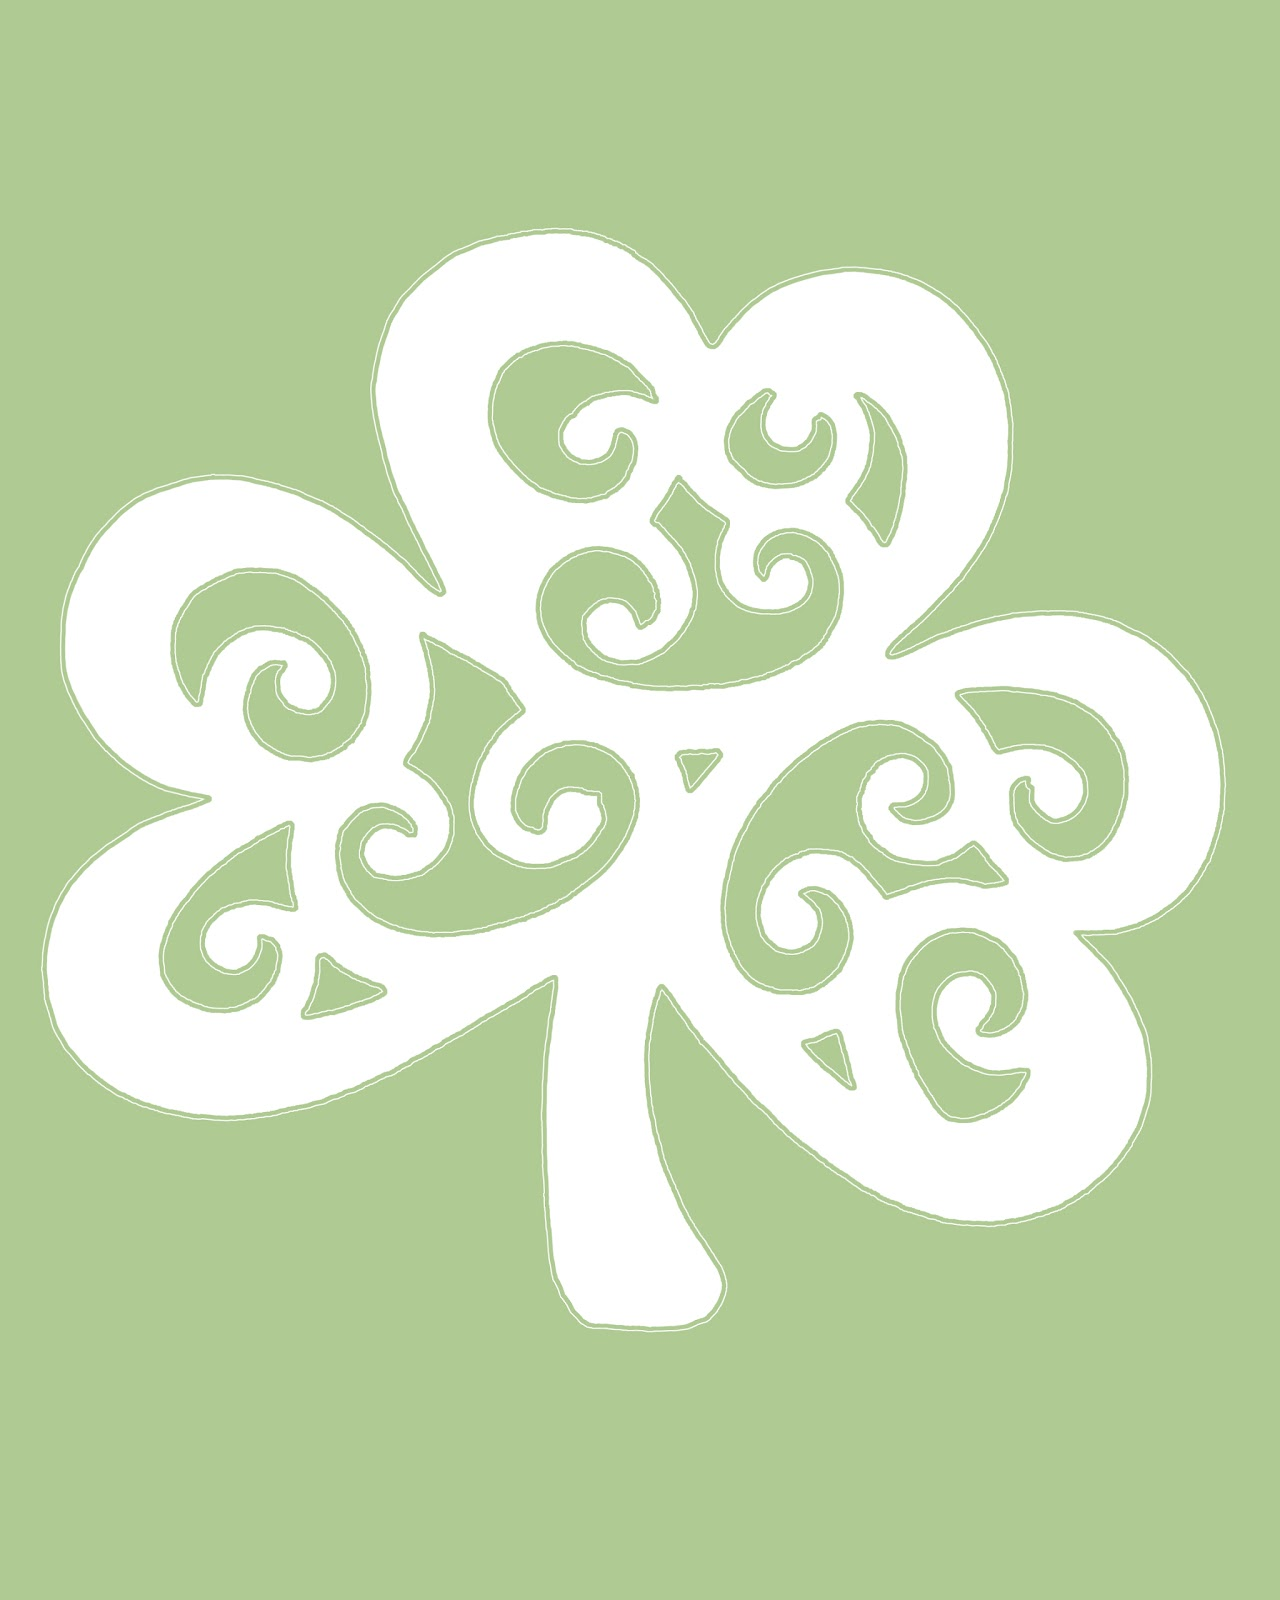 It's just an image of Nerdy St Patrick's Day Clover Printable